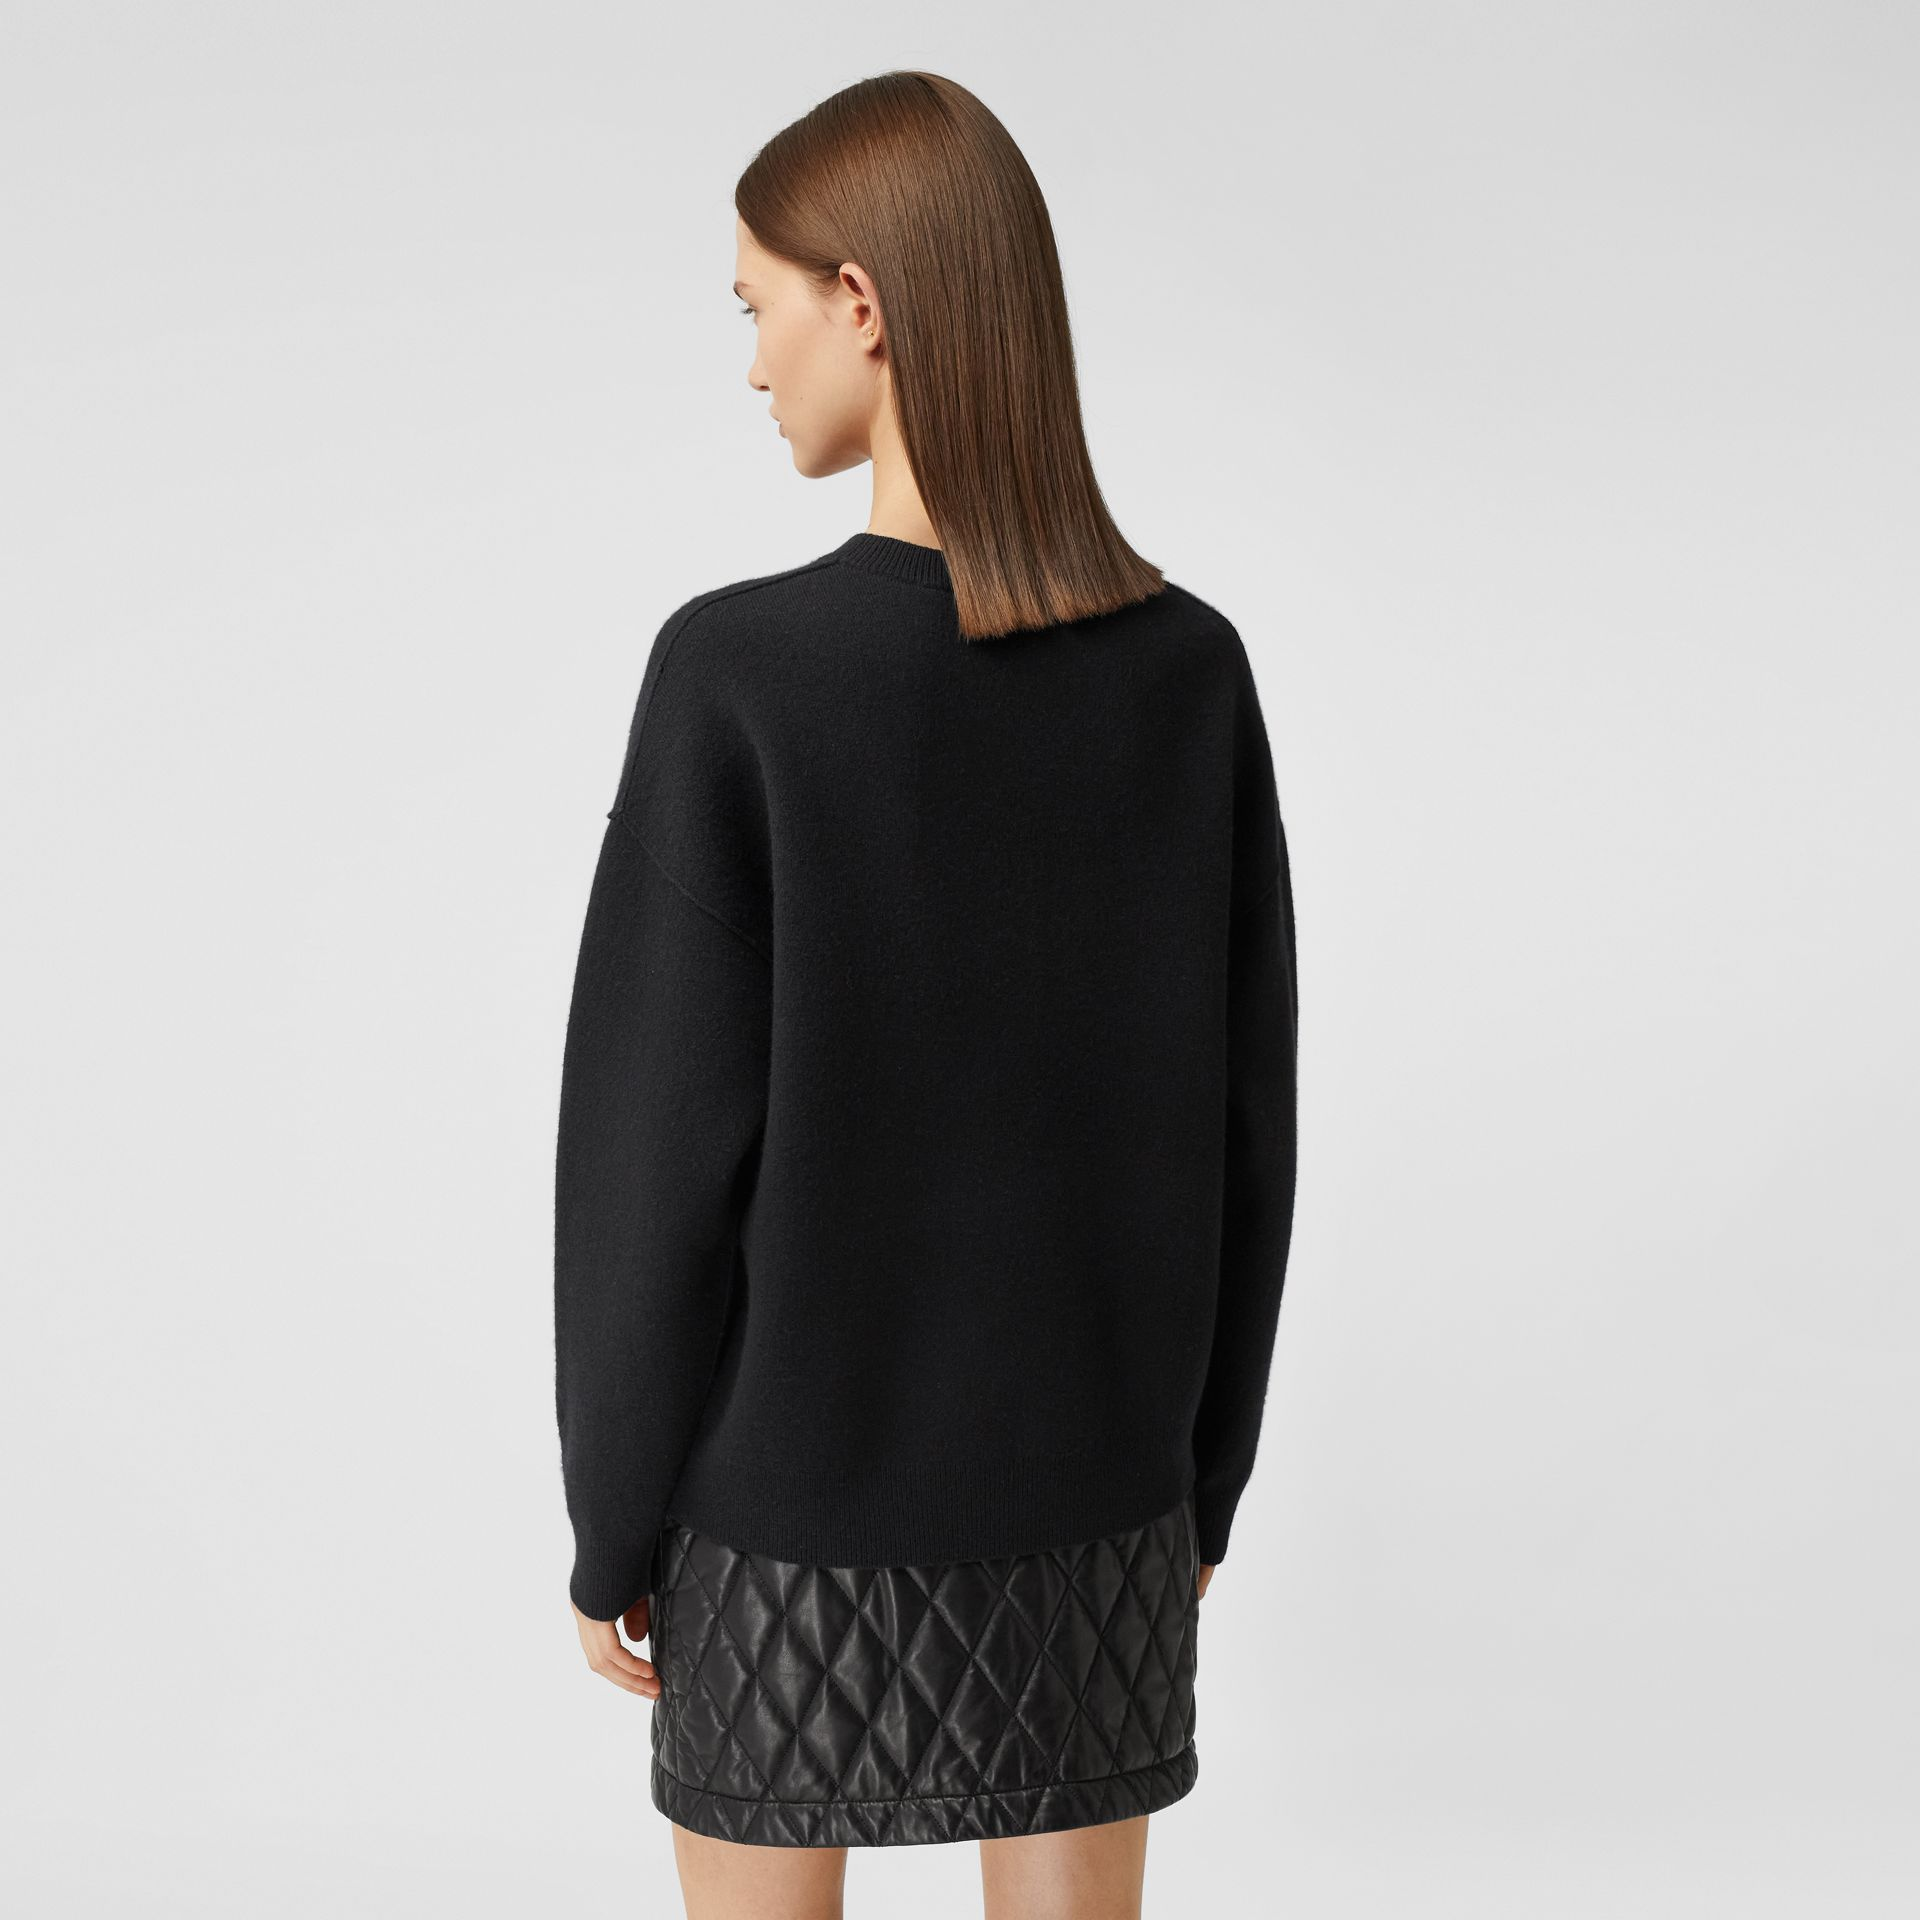 Monogram Motif Cashmere Blend Sweater in Black - Women | Burberry - gallery image 2